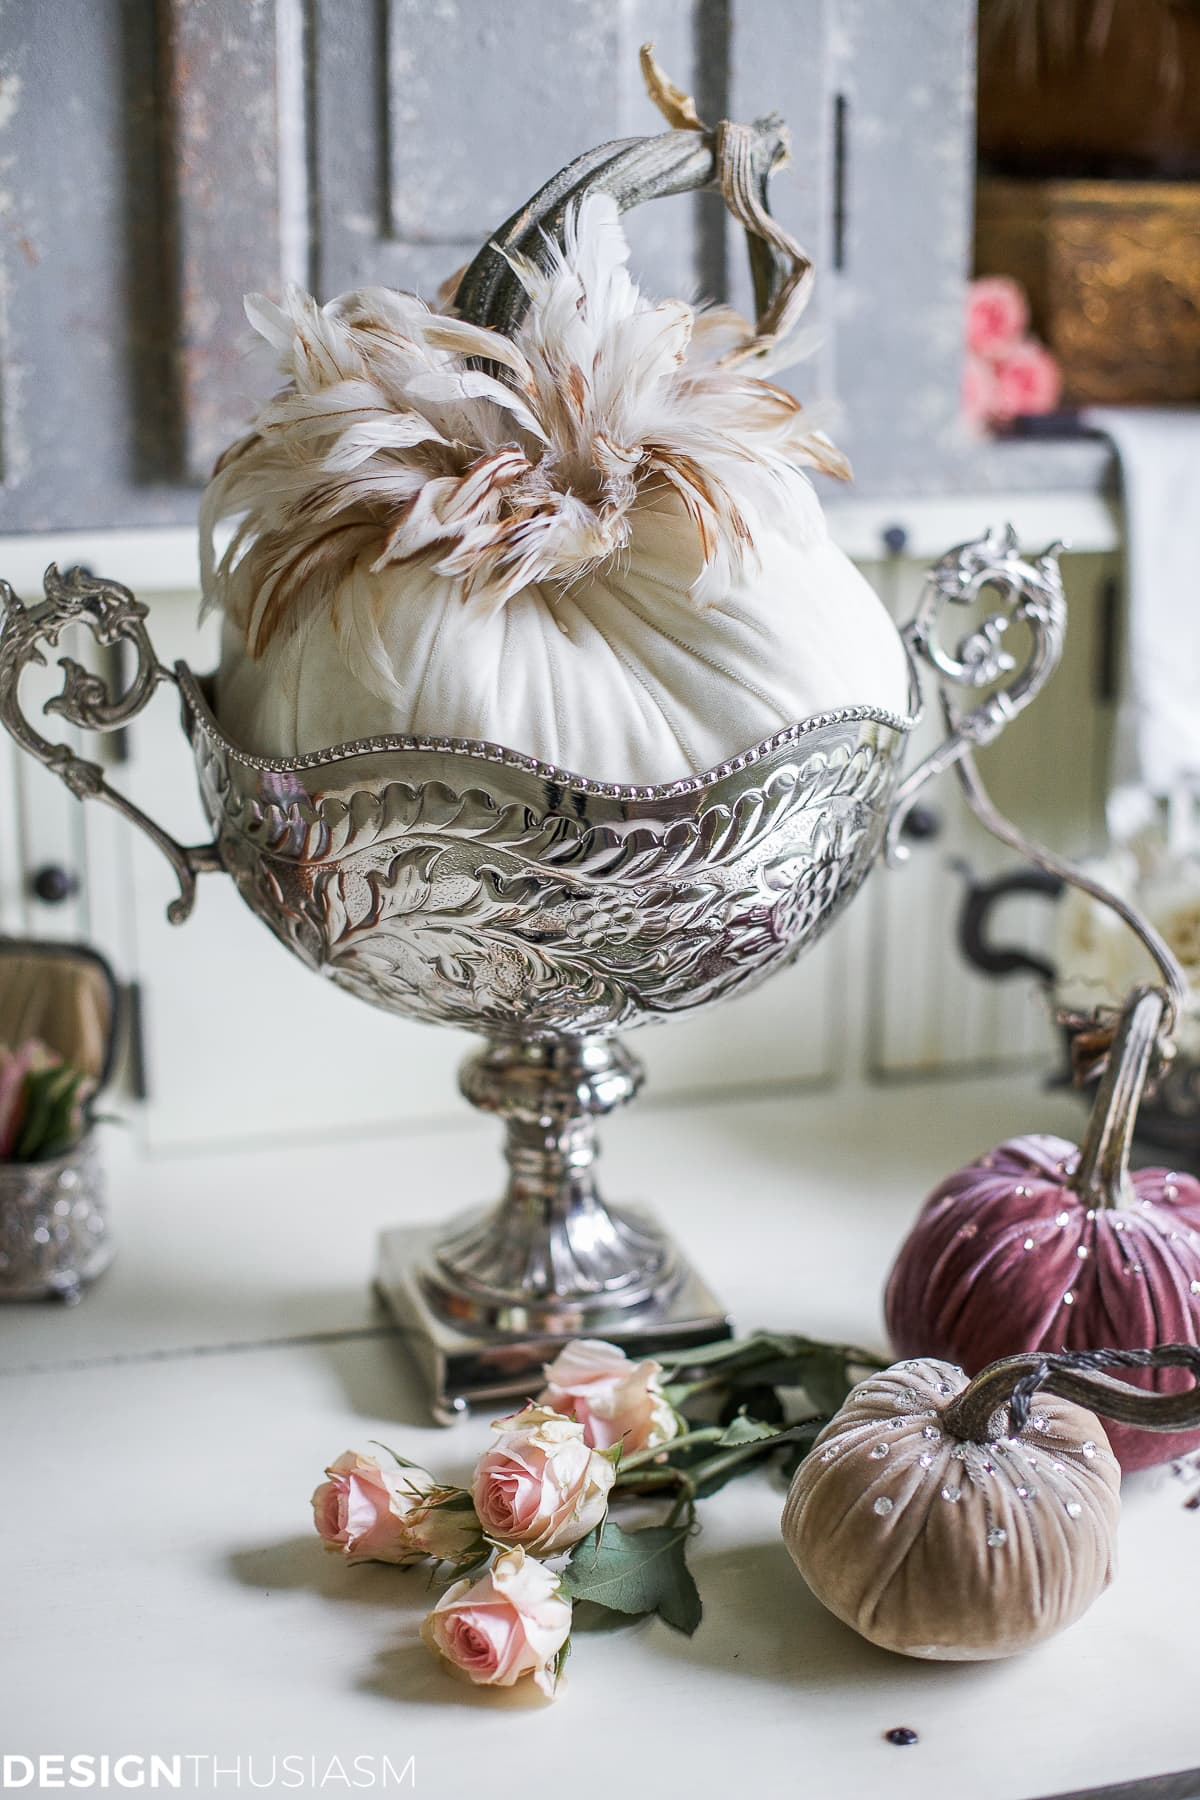 Introducing Fall Decor to Your Home with Neutral Pumpkin Styling - designthusiasm